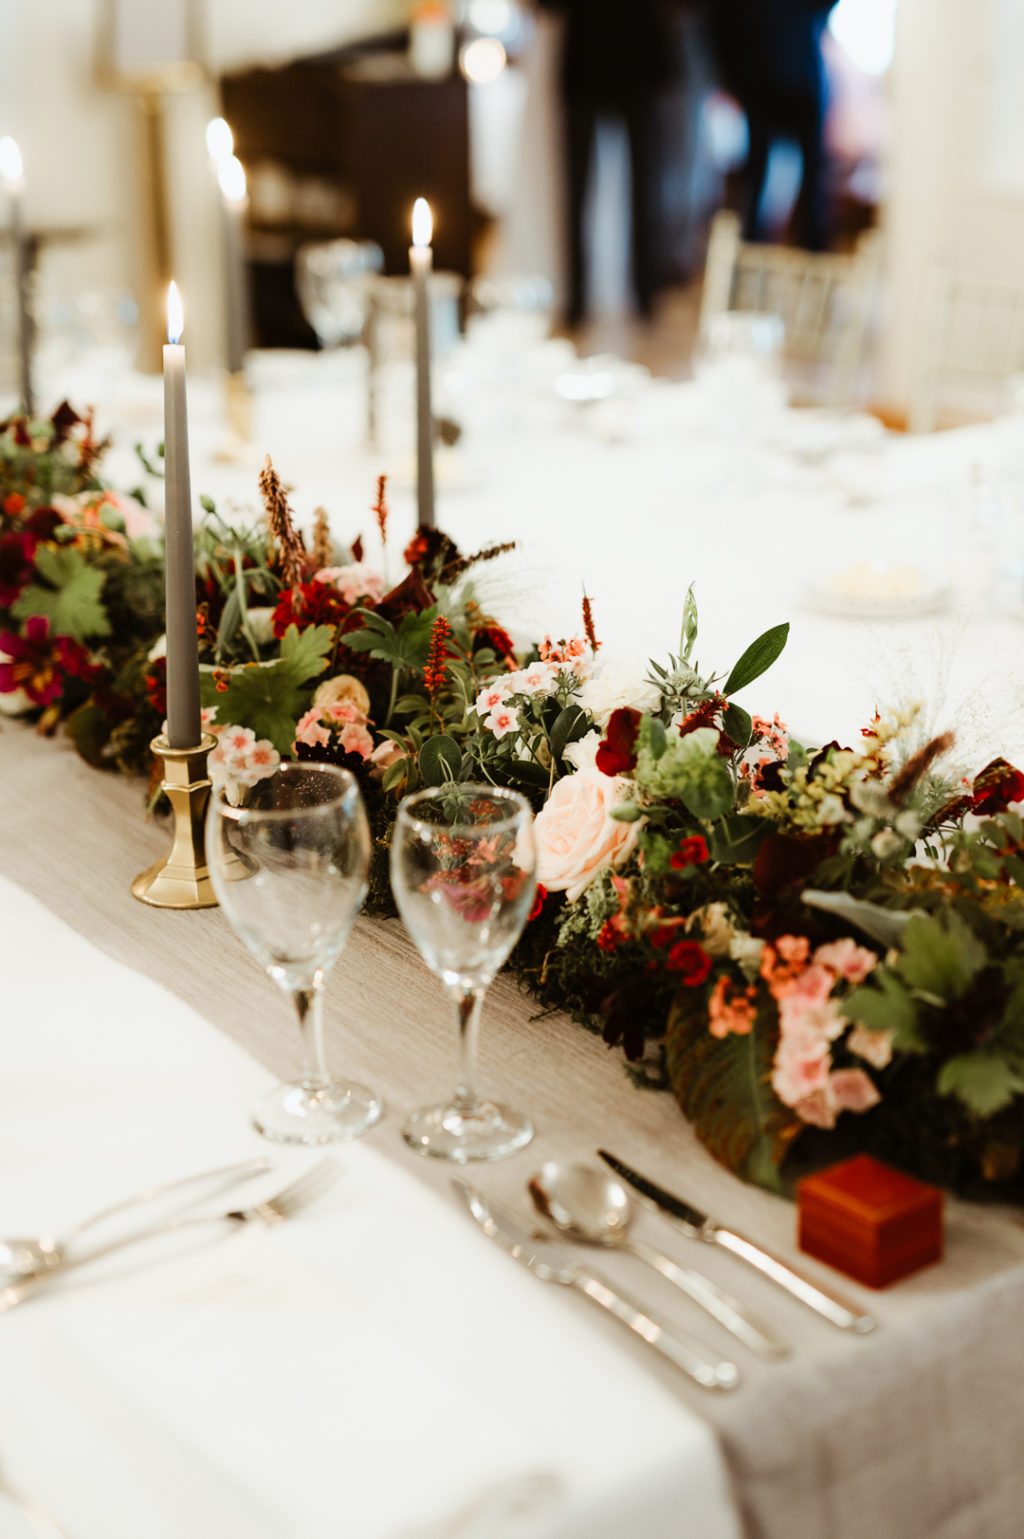 The wedding tablescape was done with bright and blush blooms and greenery, with grey candles and neutral tablecloths